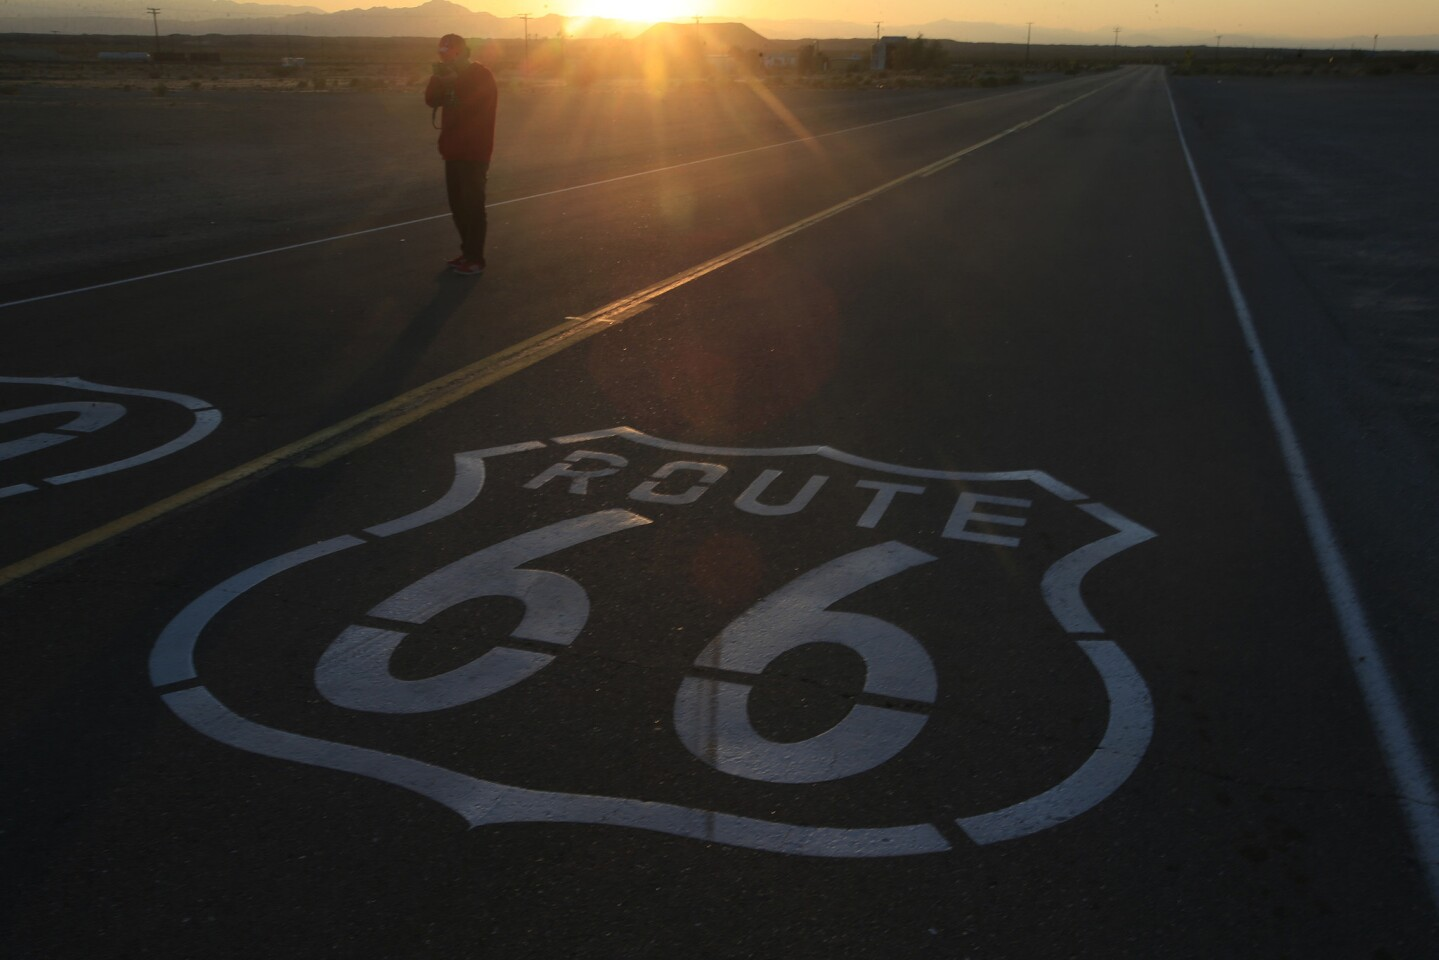 Countless tourists stop for photos of the Route 66 sign painted on the highway in Amboy, Calif.